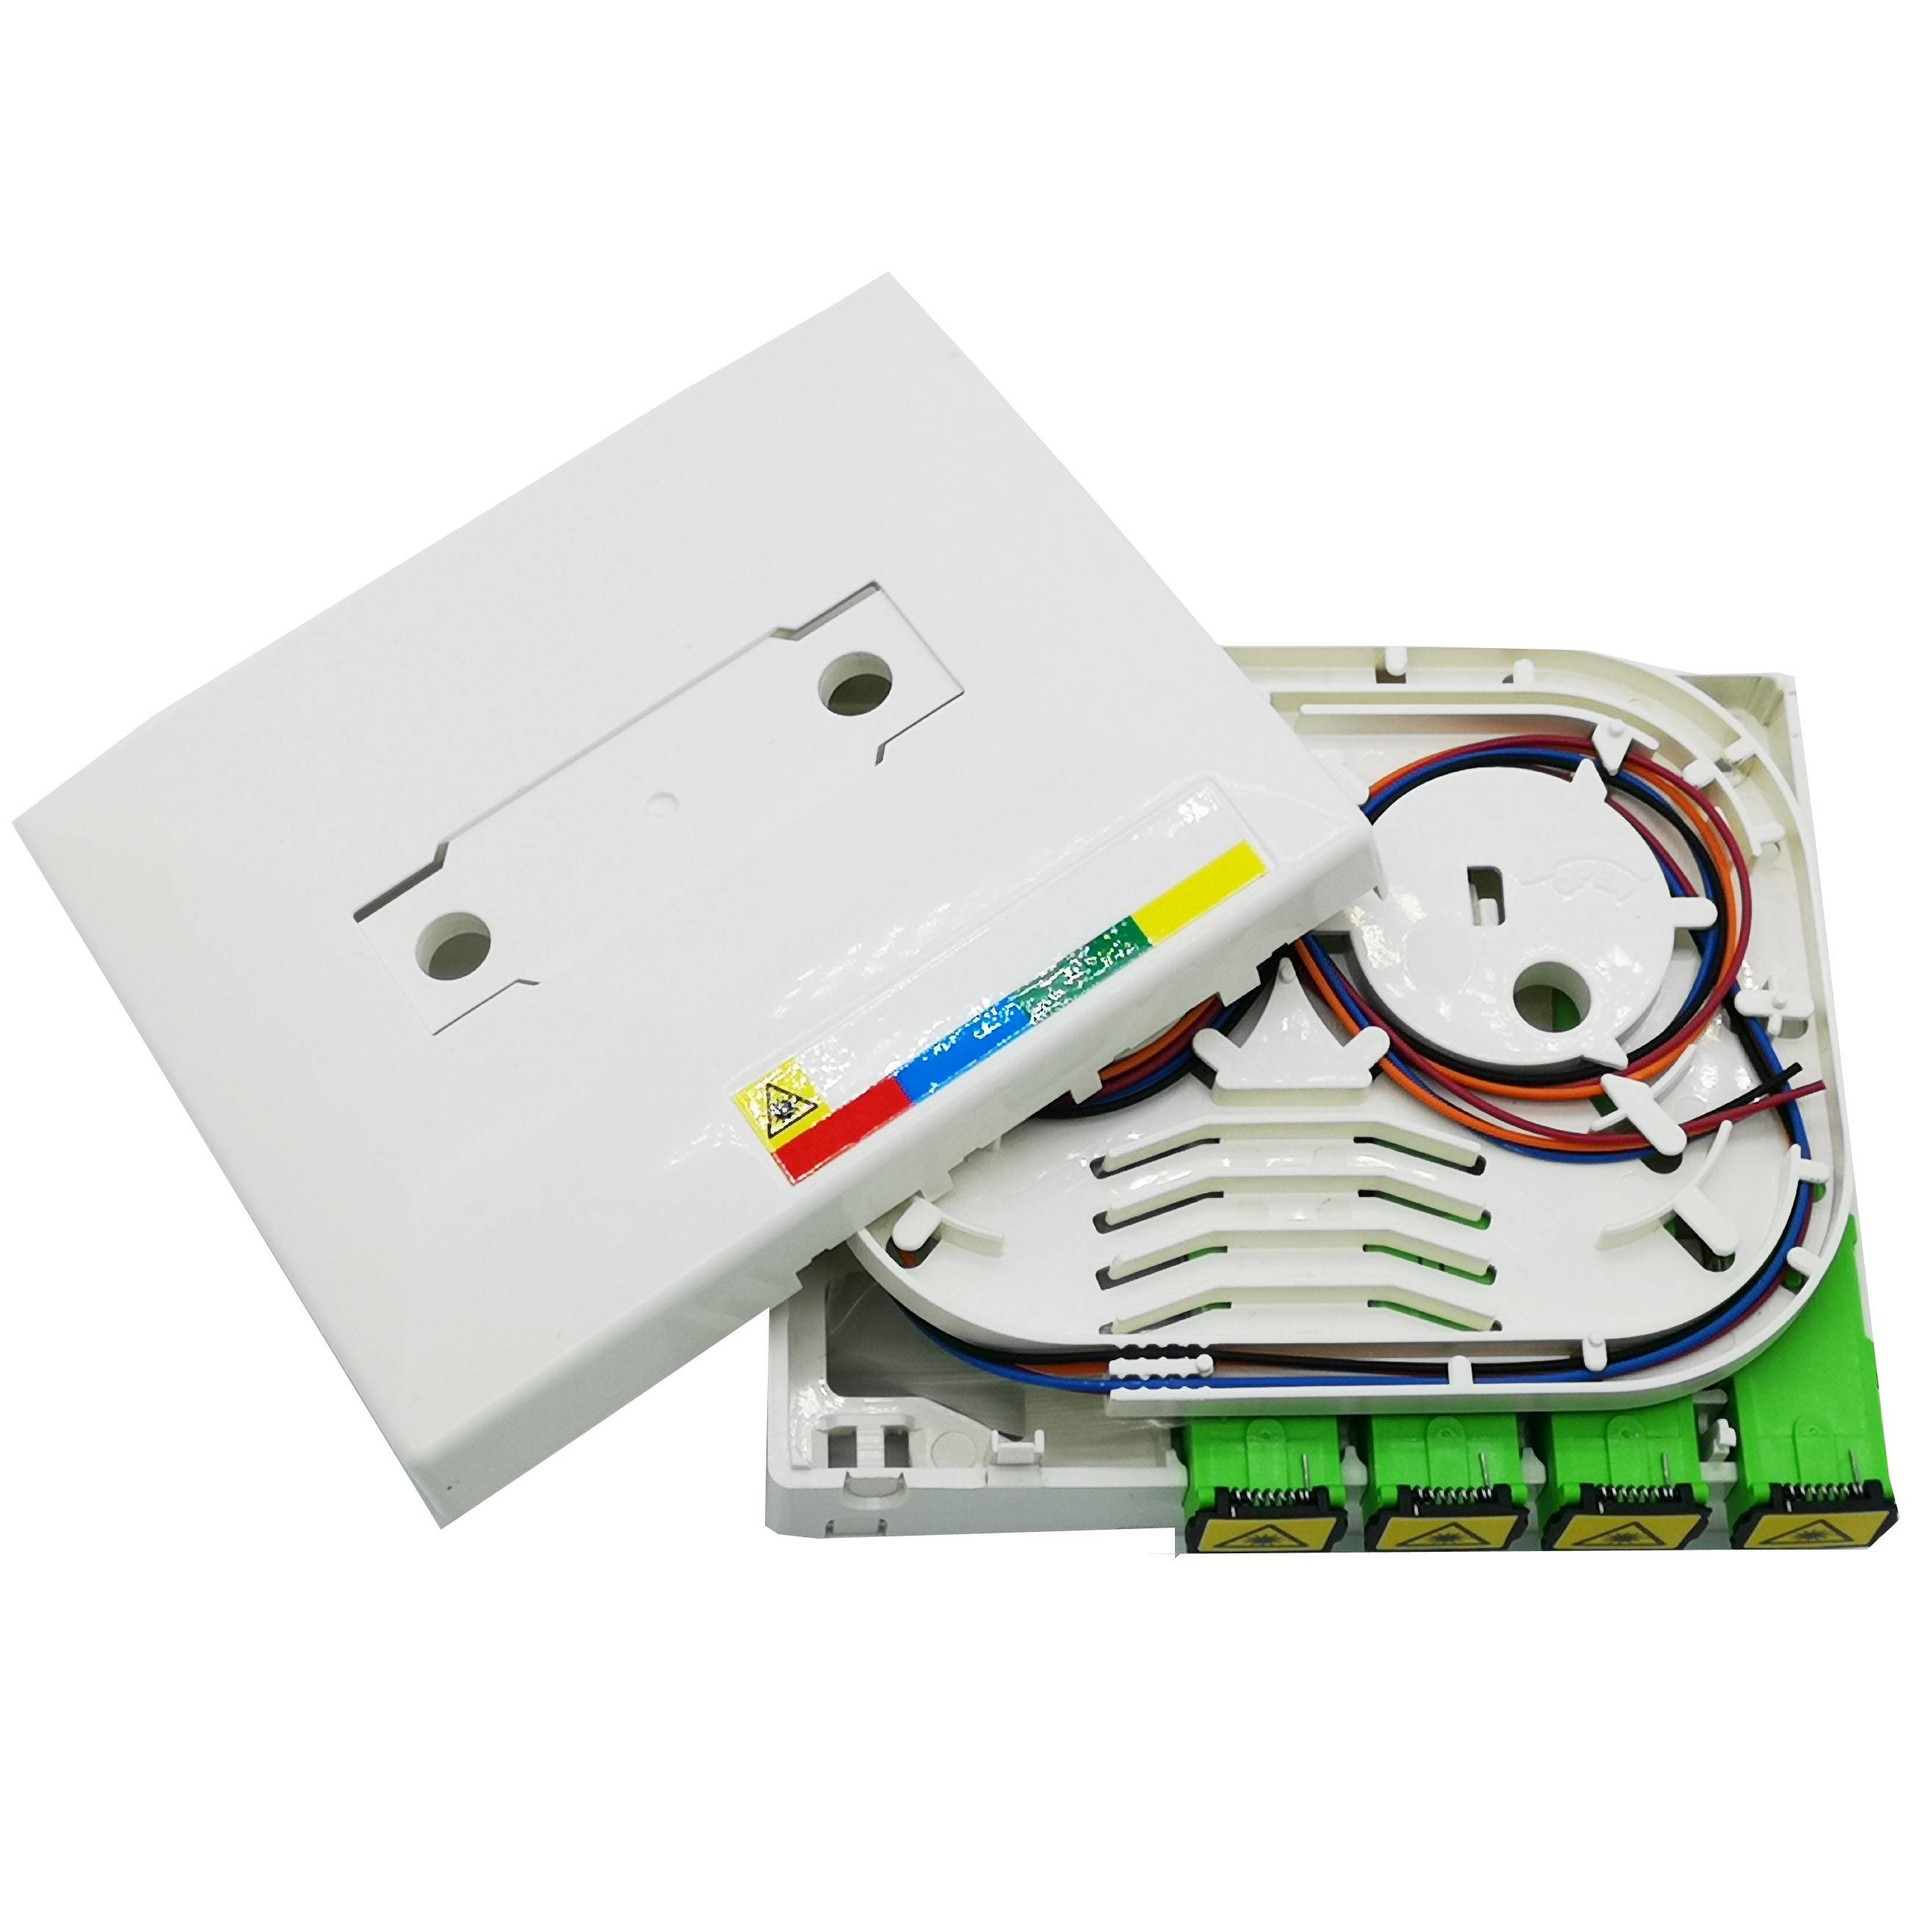 FTB104E 4 Port fiber socket panel wall mounted access terminal box